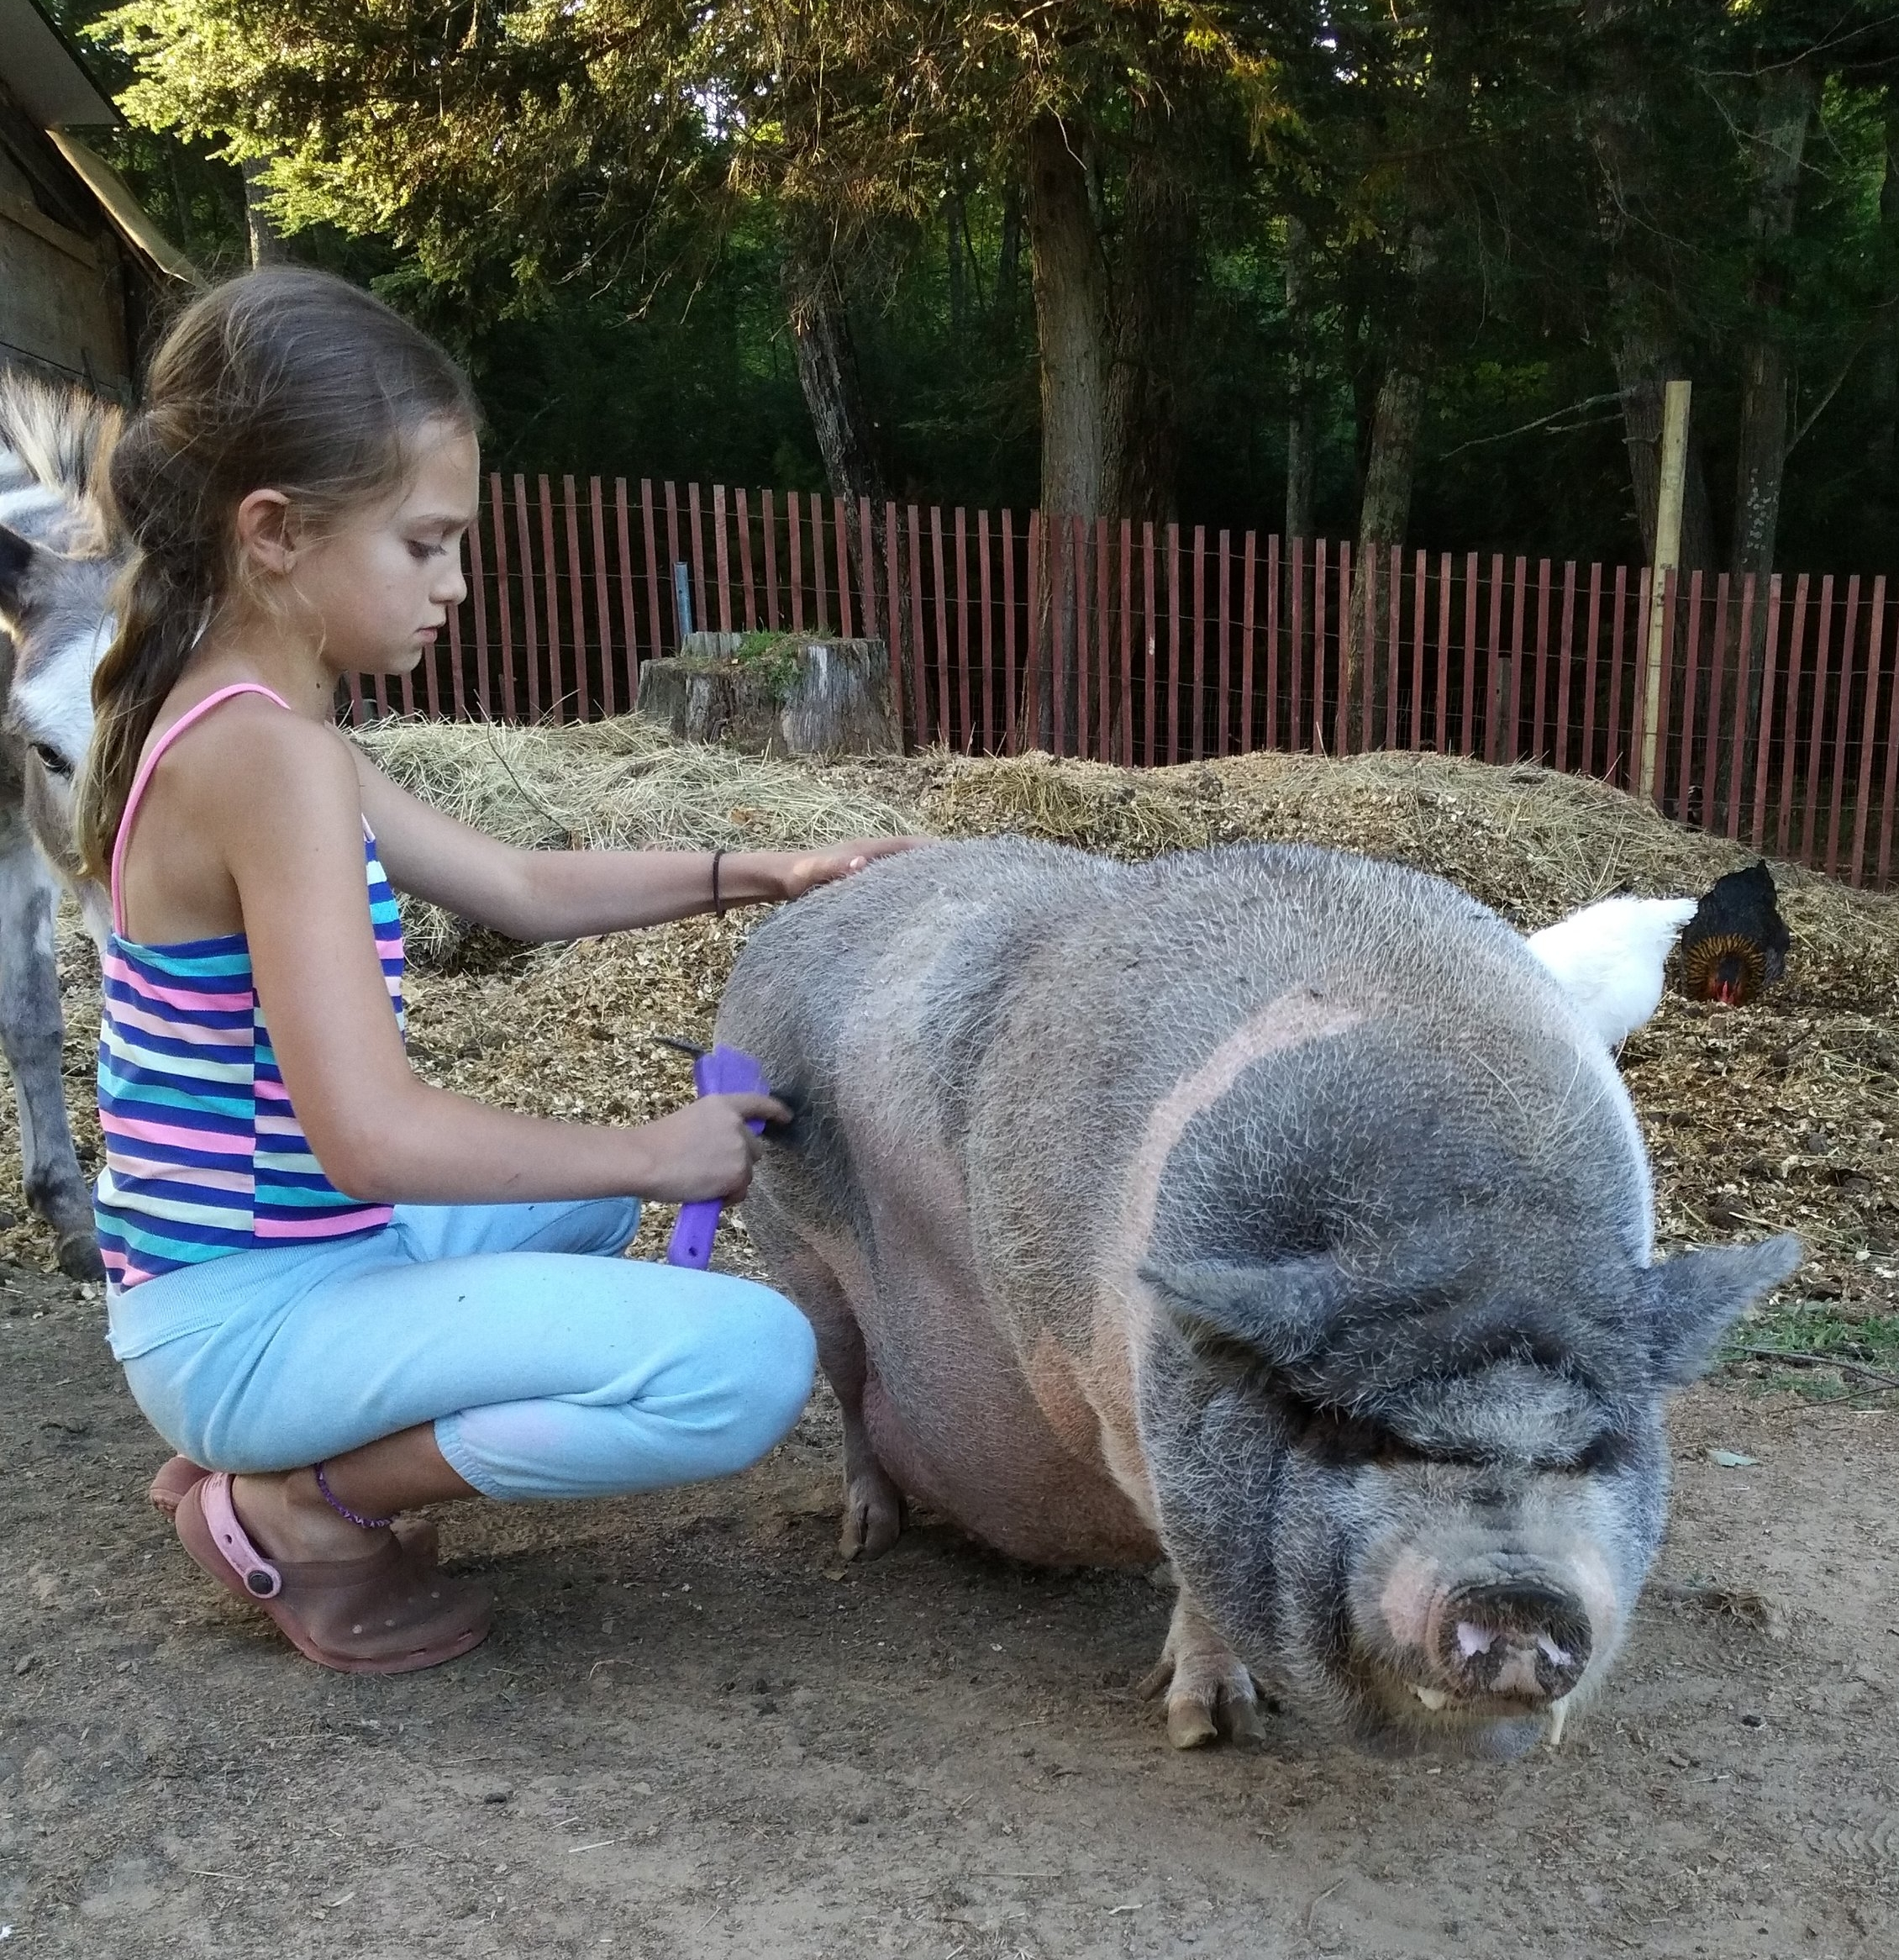 This little piggy has come so far! When we took her in she could barely walk and was VERY overweight. She now roams about the farm living the best pig life, greeting anyone she comes across.